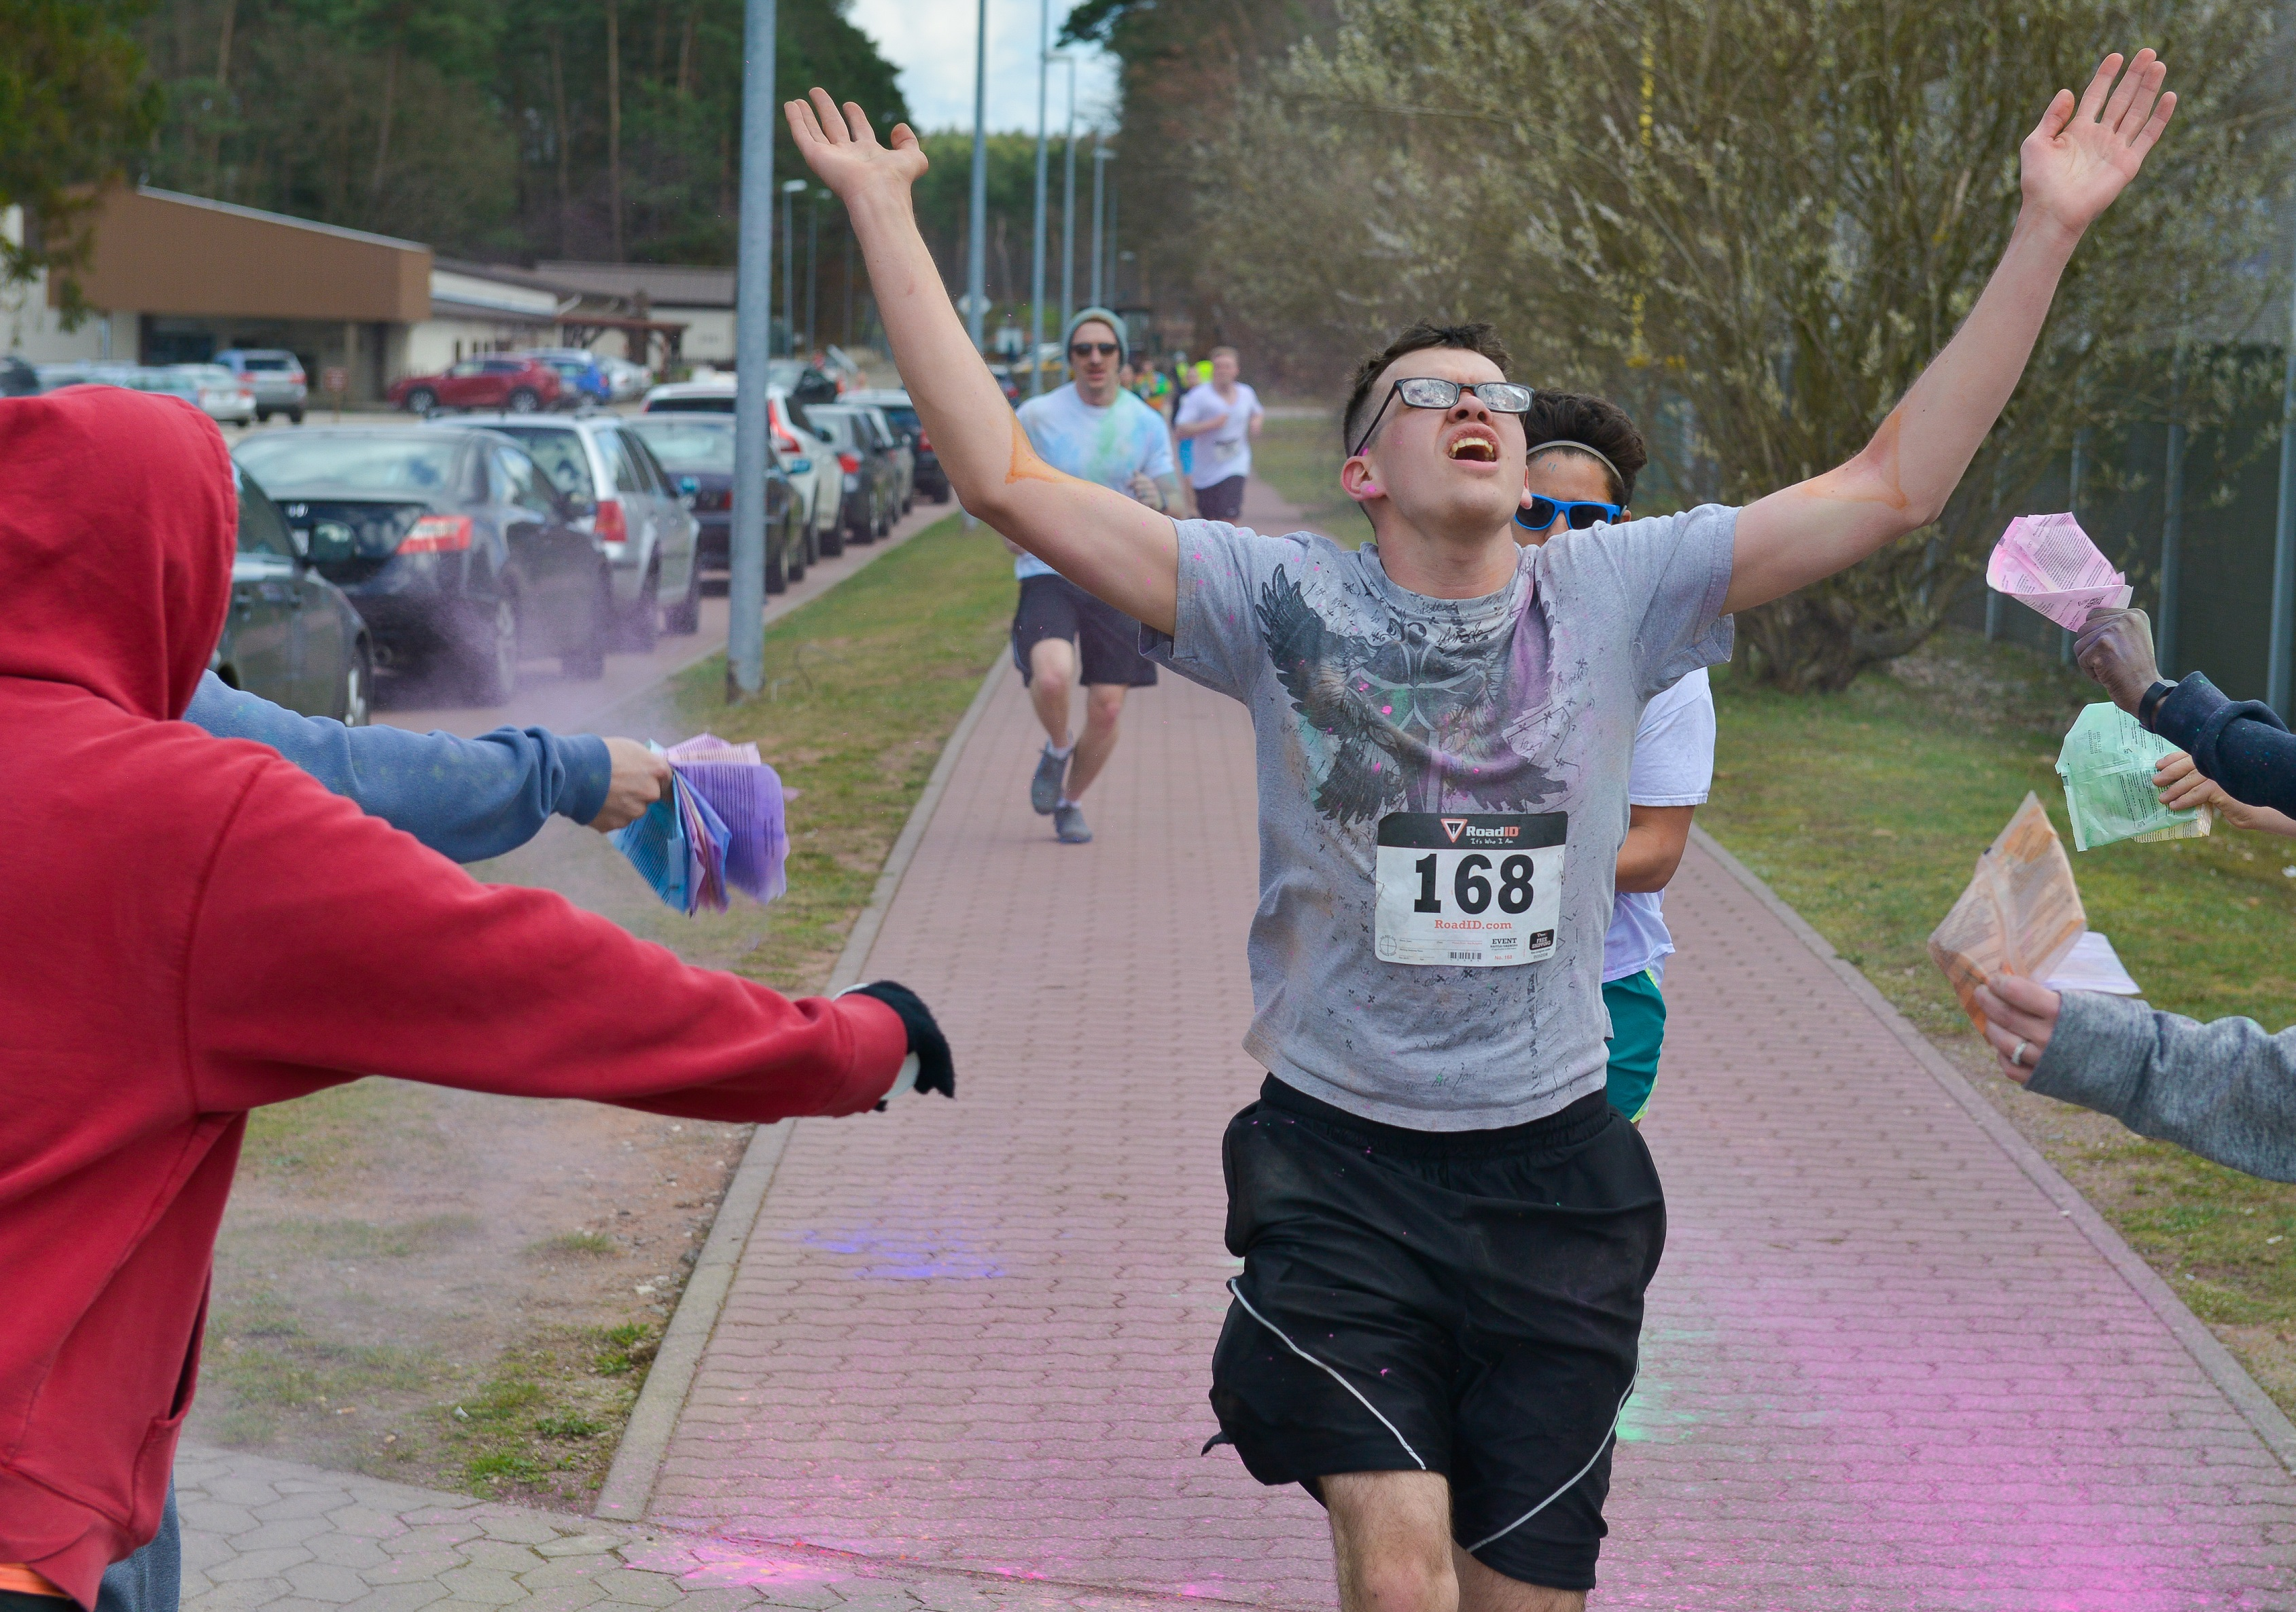 A runner sprints through the finish line during the 2016 Air Force  Assistance Fund Color Run bdb2c6177